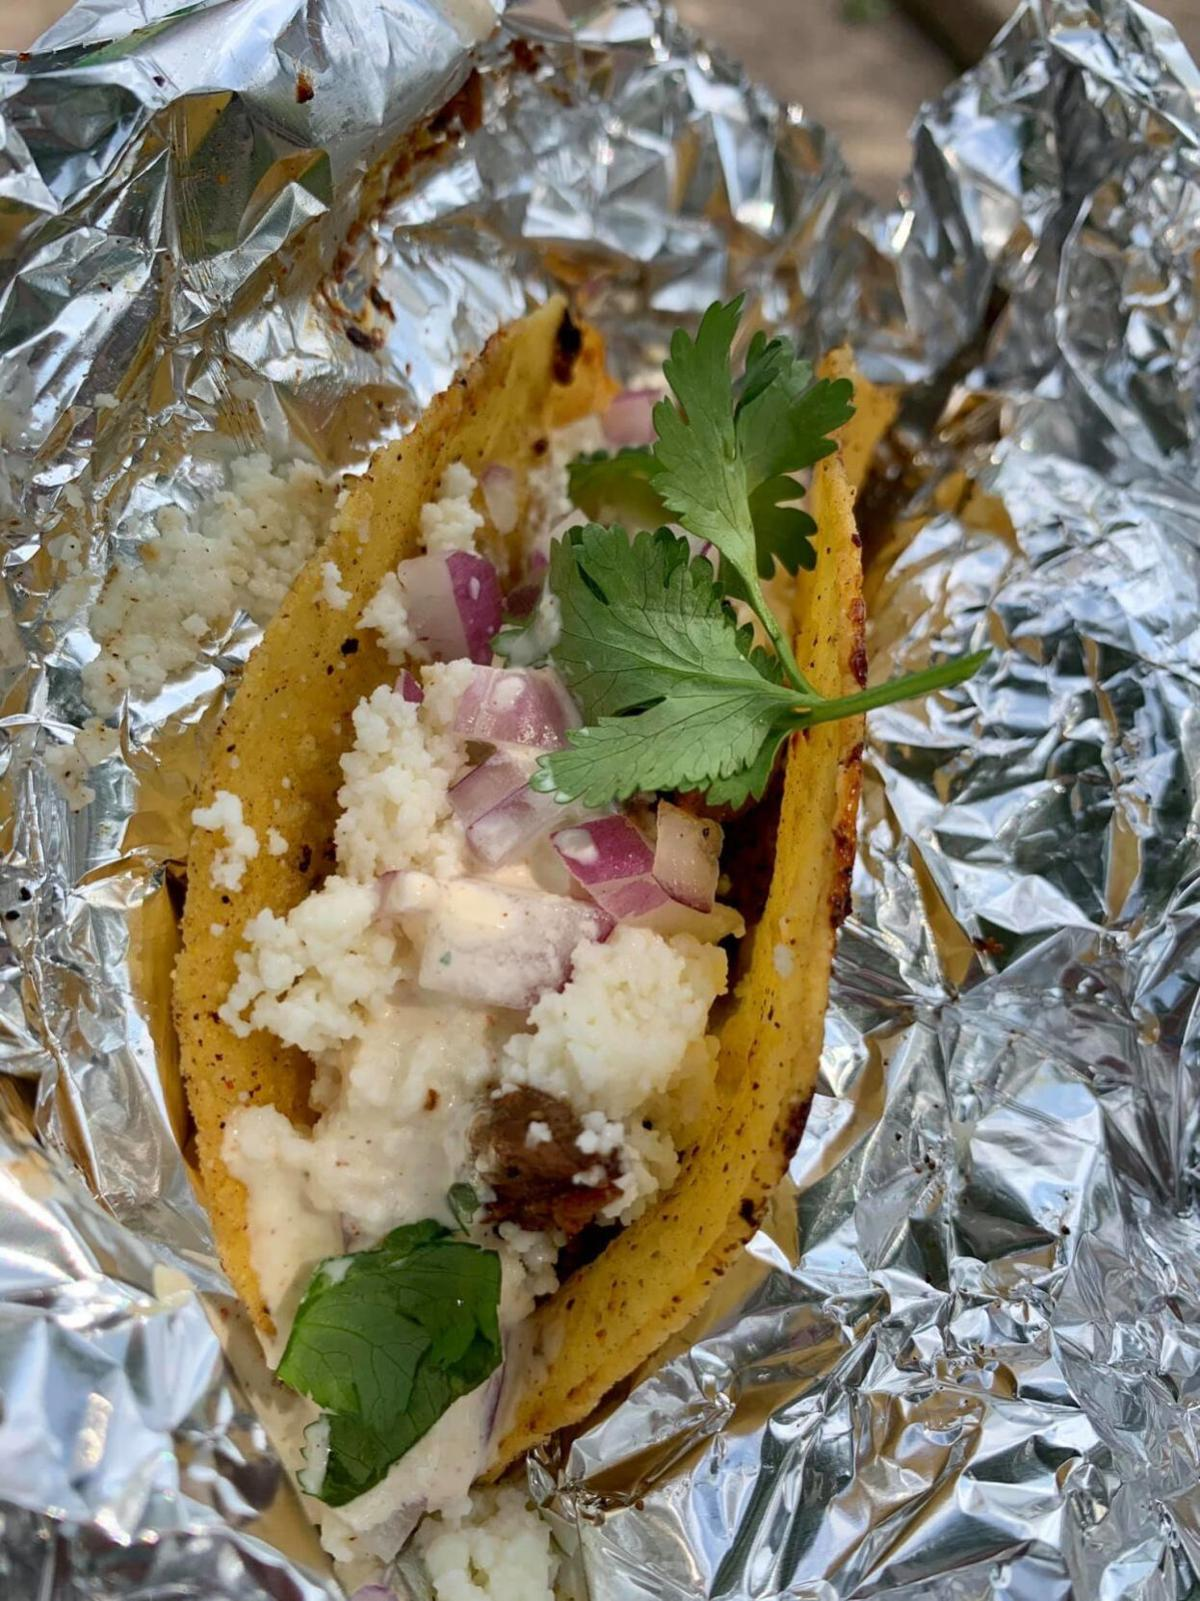 20200916-gm-food-guy-Carne Asada Taco from Joey's Rockin' Dogs and Tacos - credit BRANDON MOUSER.jpg